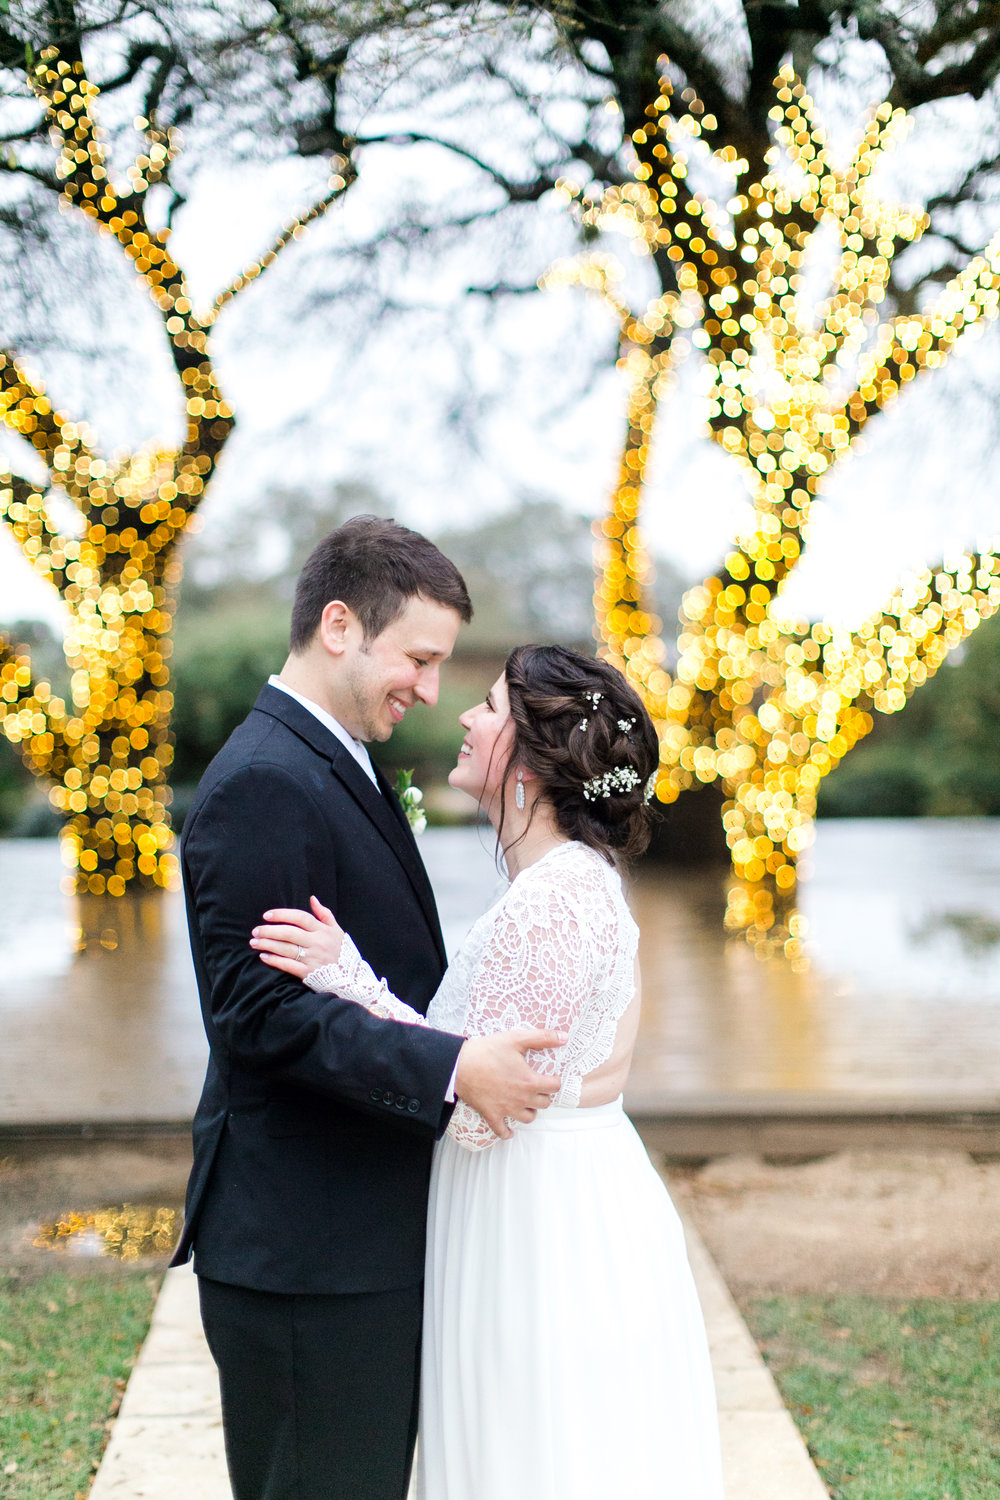 Austin_Texas_Fine_Art_Wedding_Photographer_Kayla_Snell_Photography_Antebellum_Oaks538.jpg